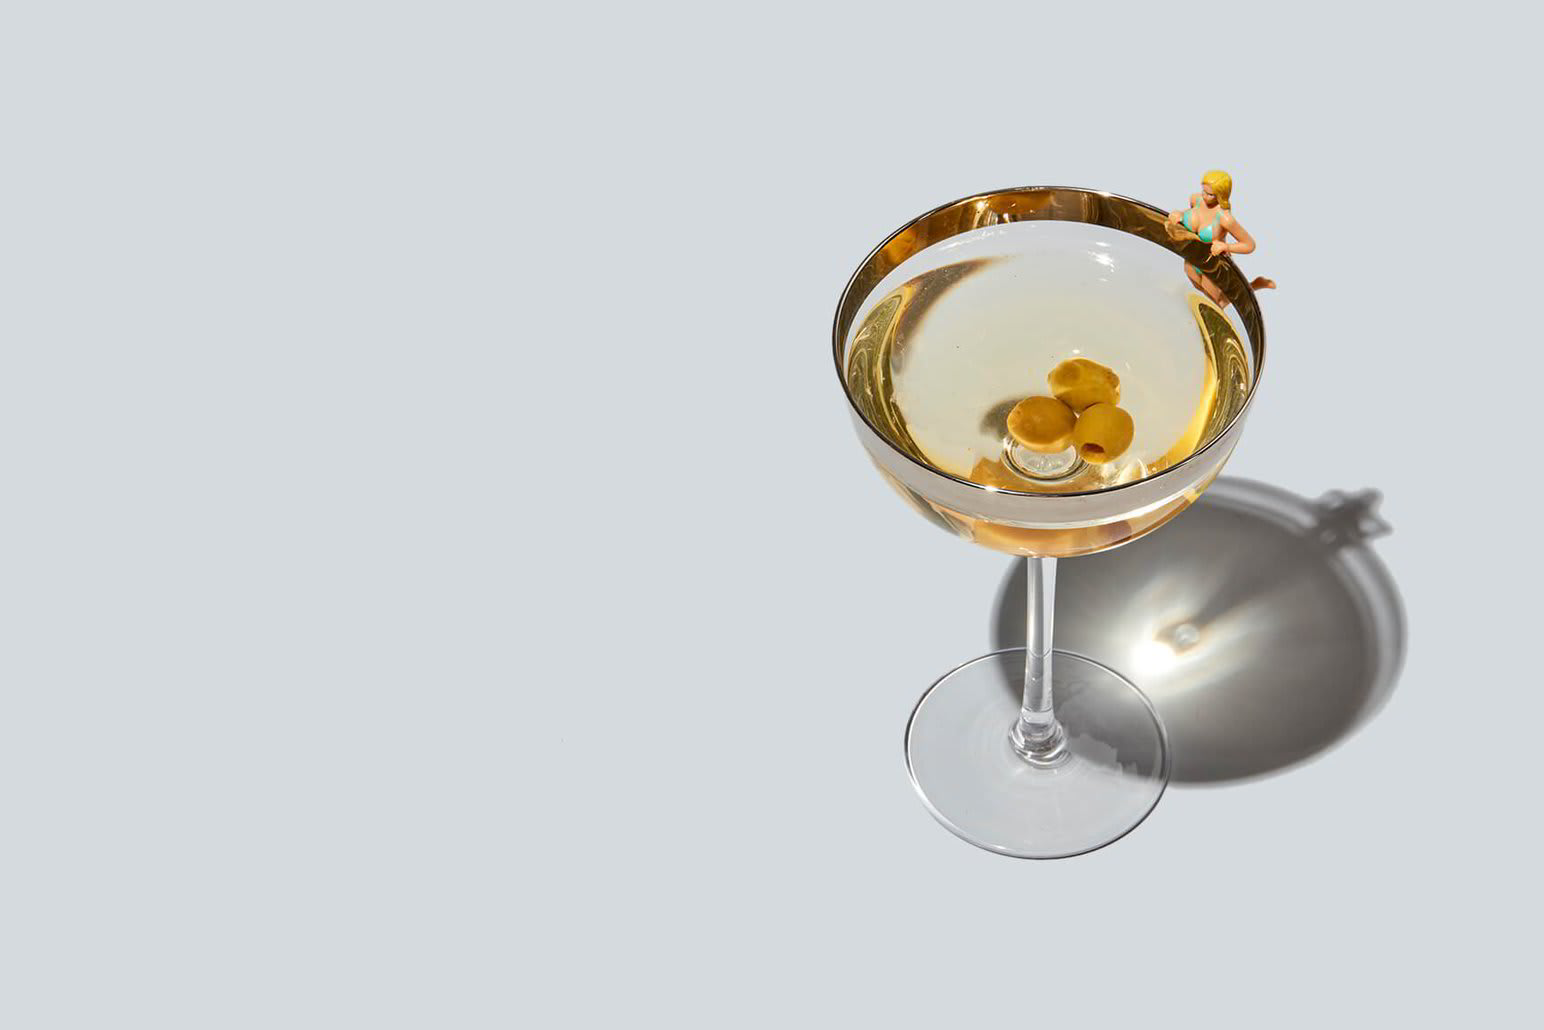 A female action figure perched on the rim of a martini glass